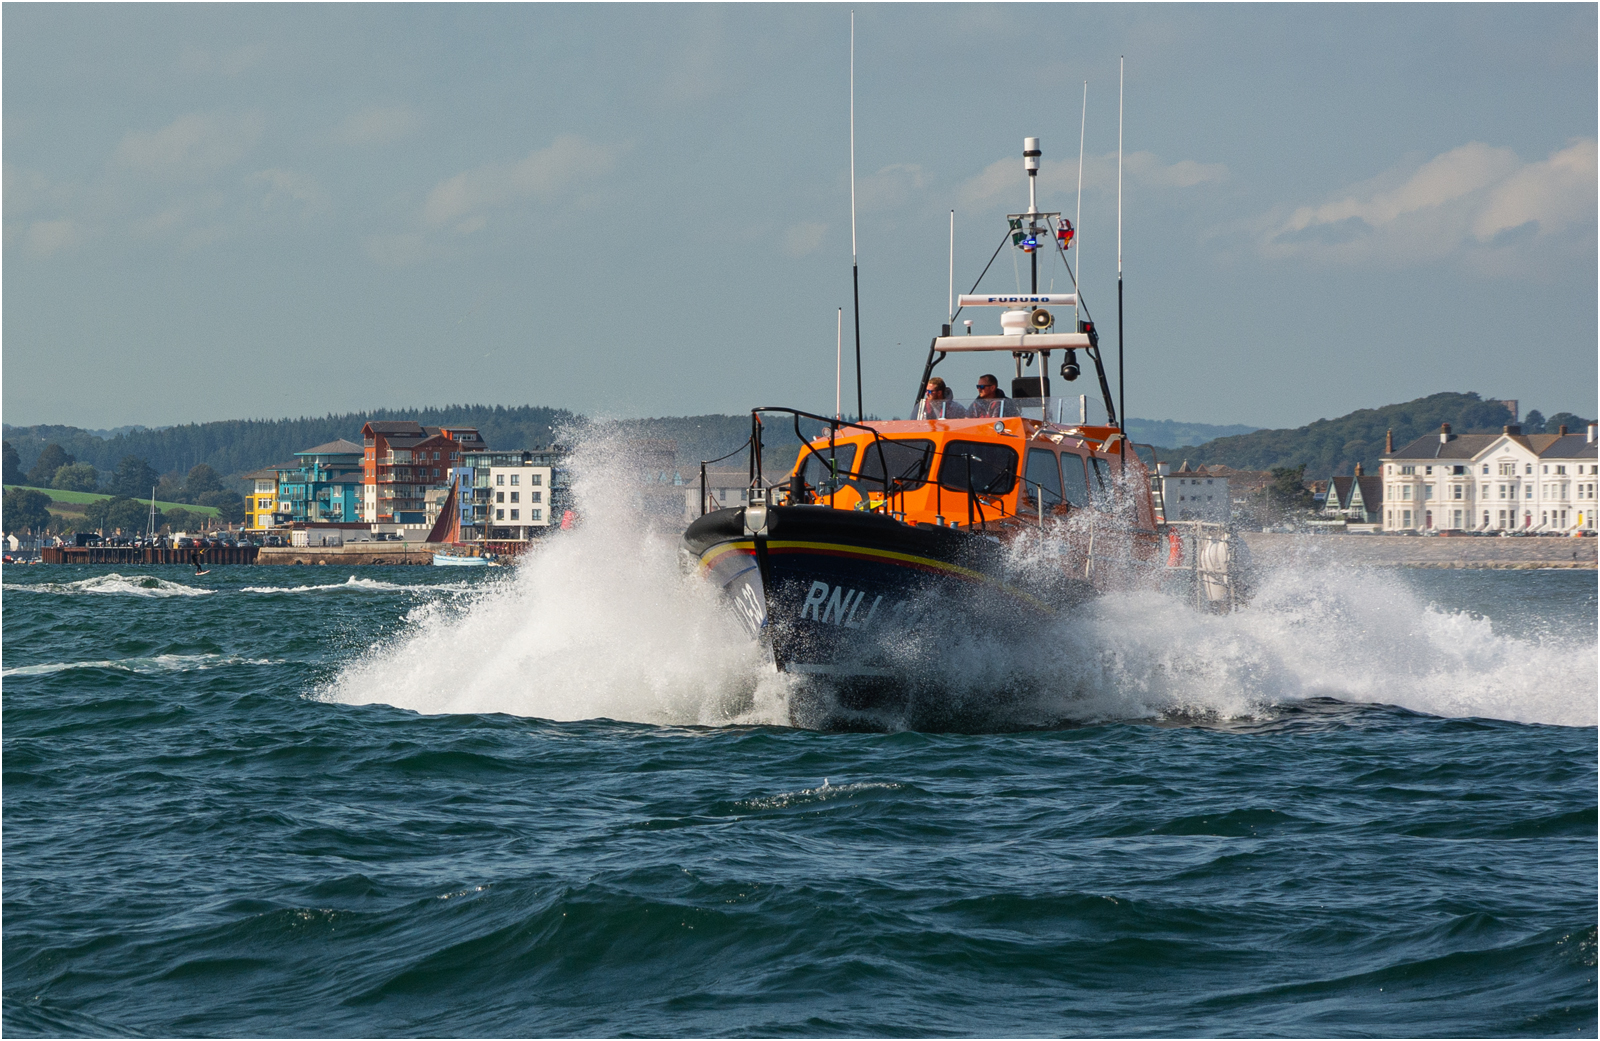 Exmouth Lifeboat